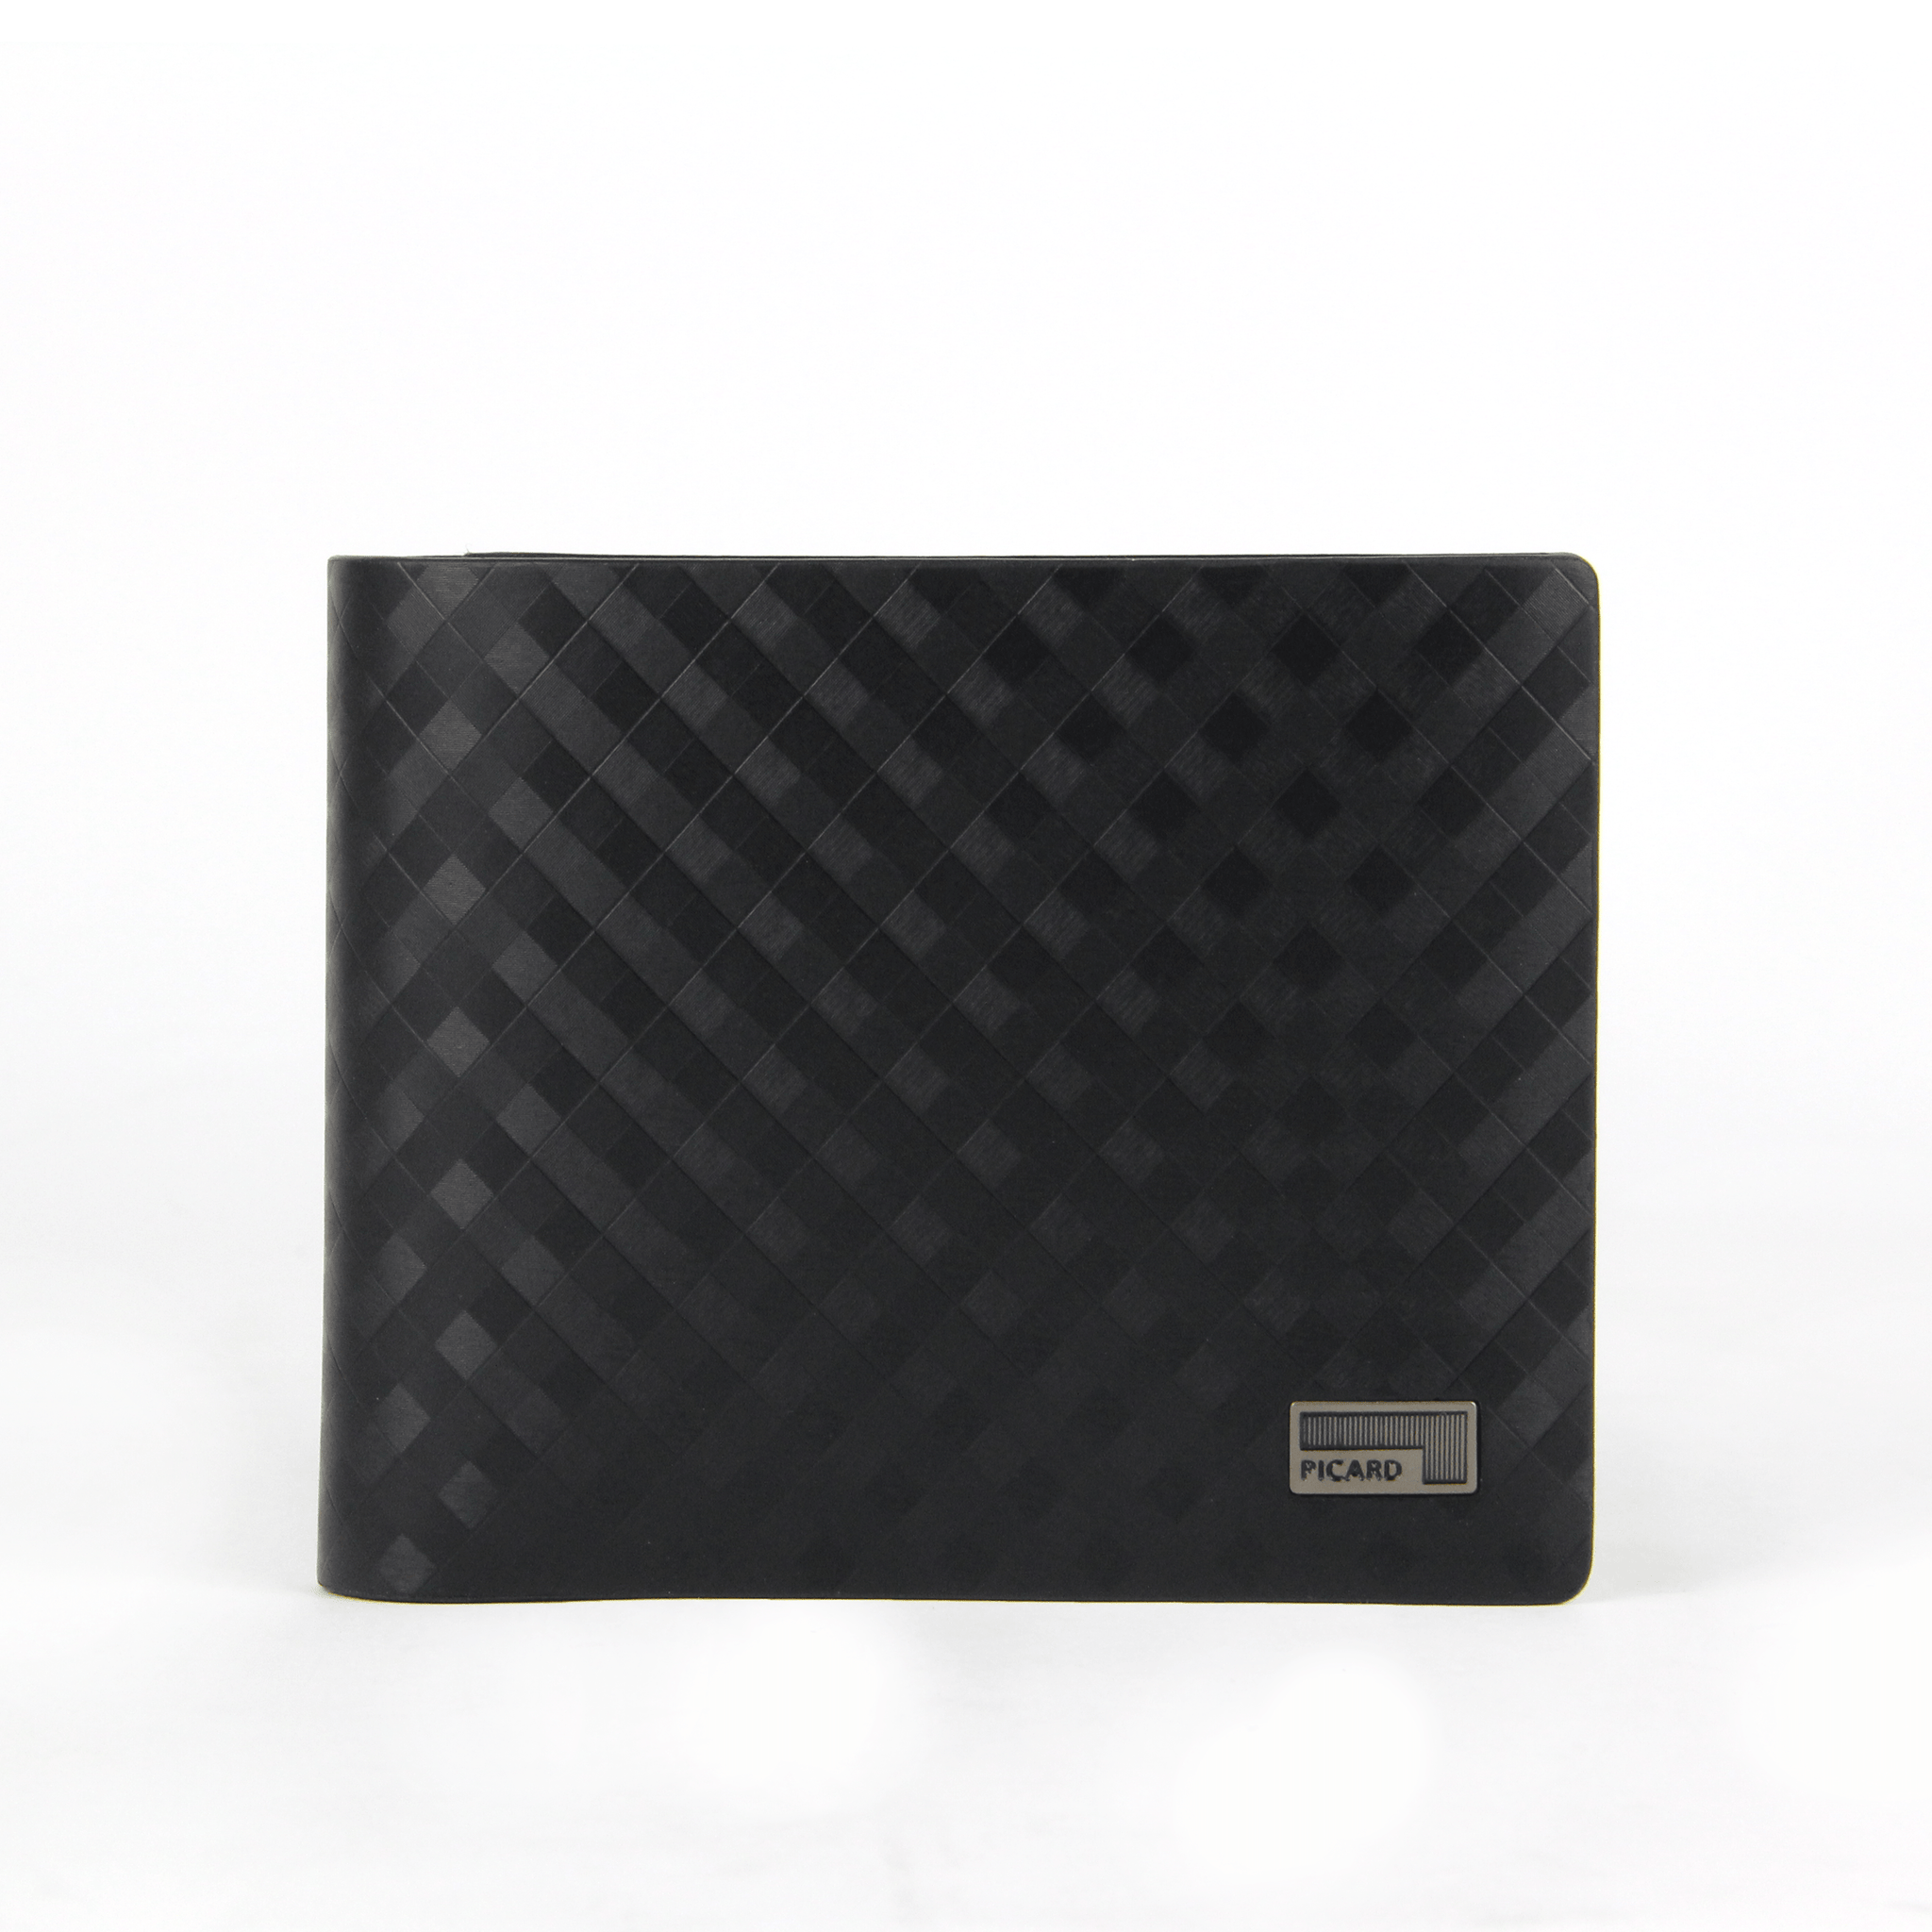 Picard Checker Flap Wallet 007851